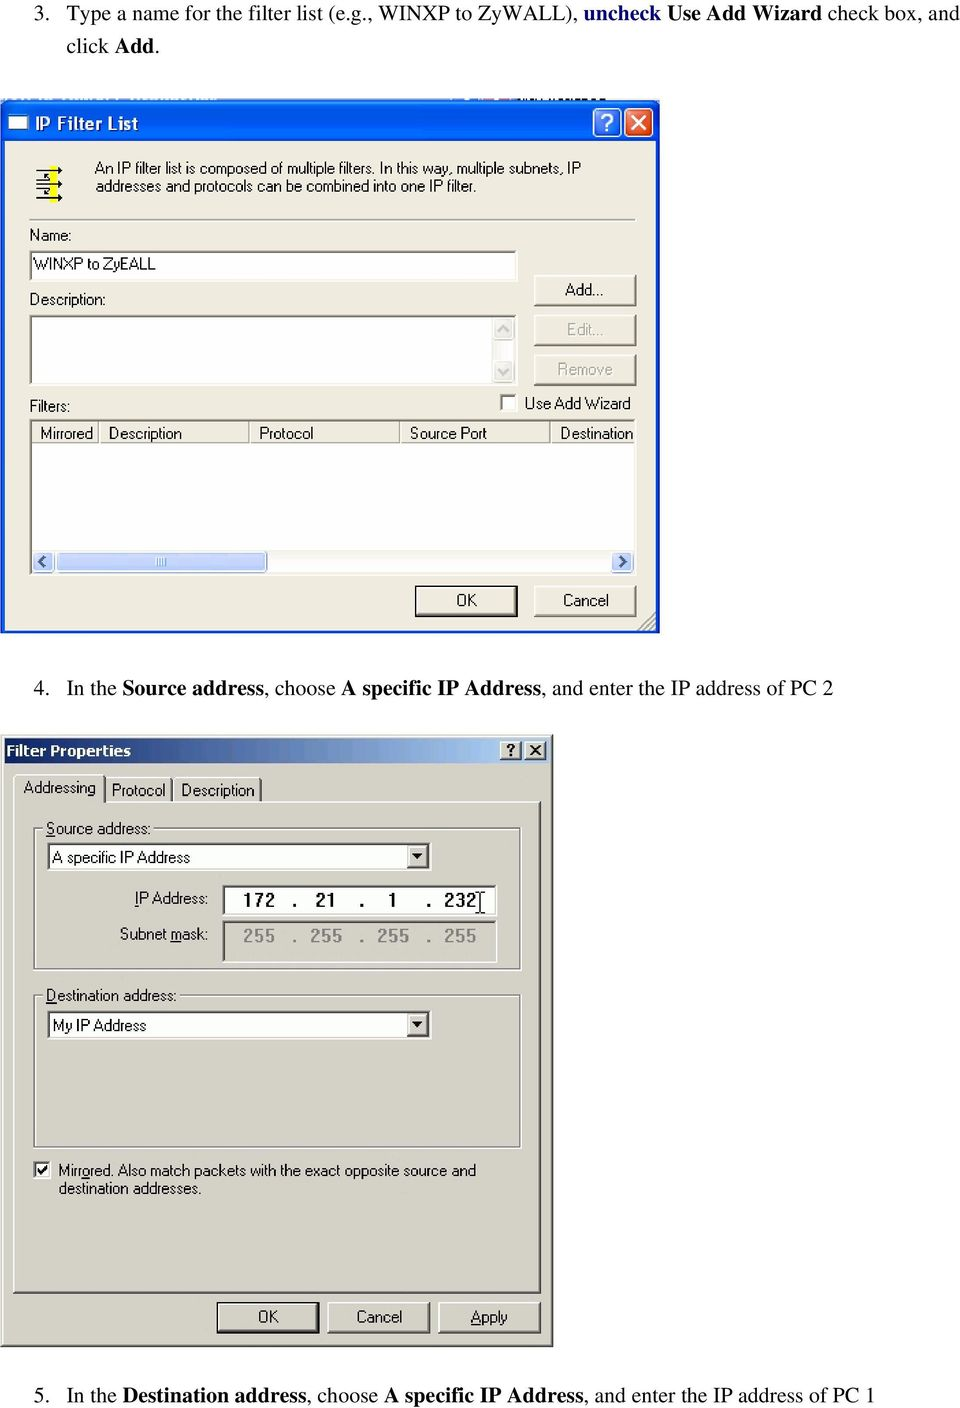 In the Source address, choose A specific IP Address, and enter the IP